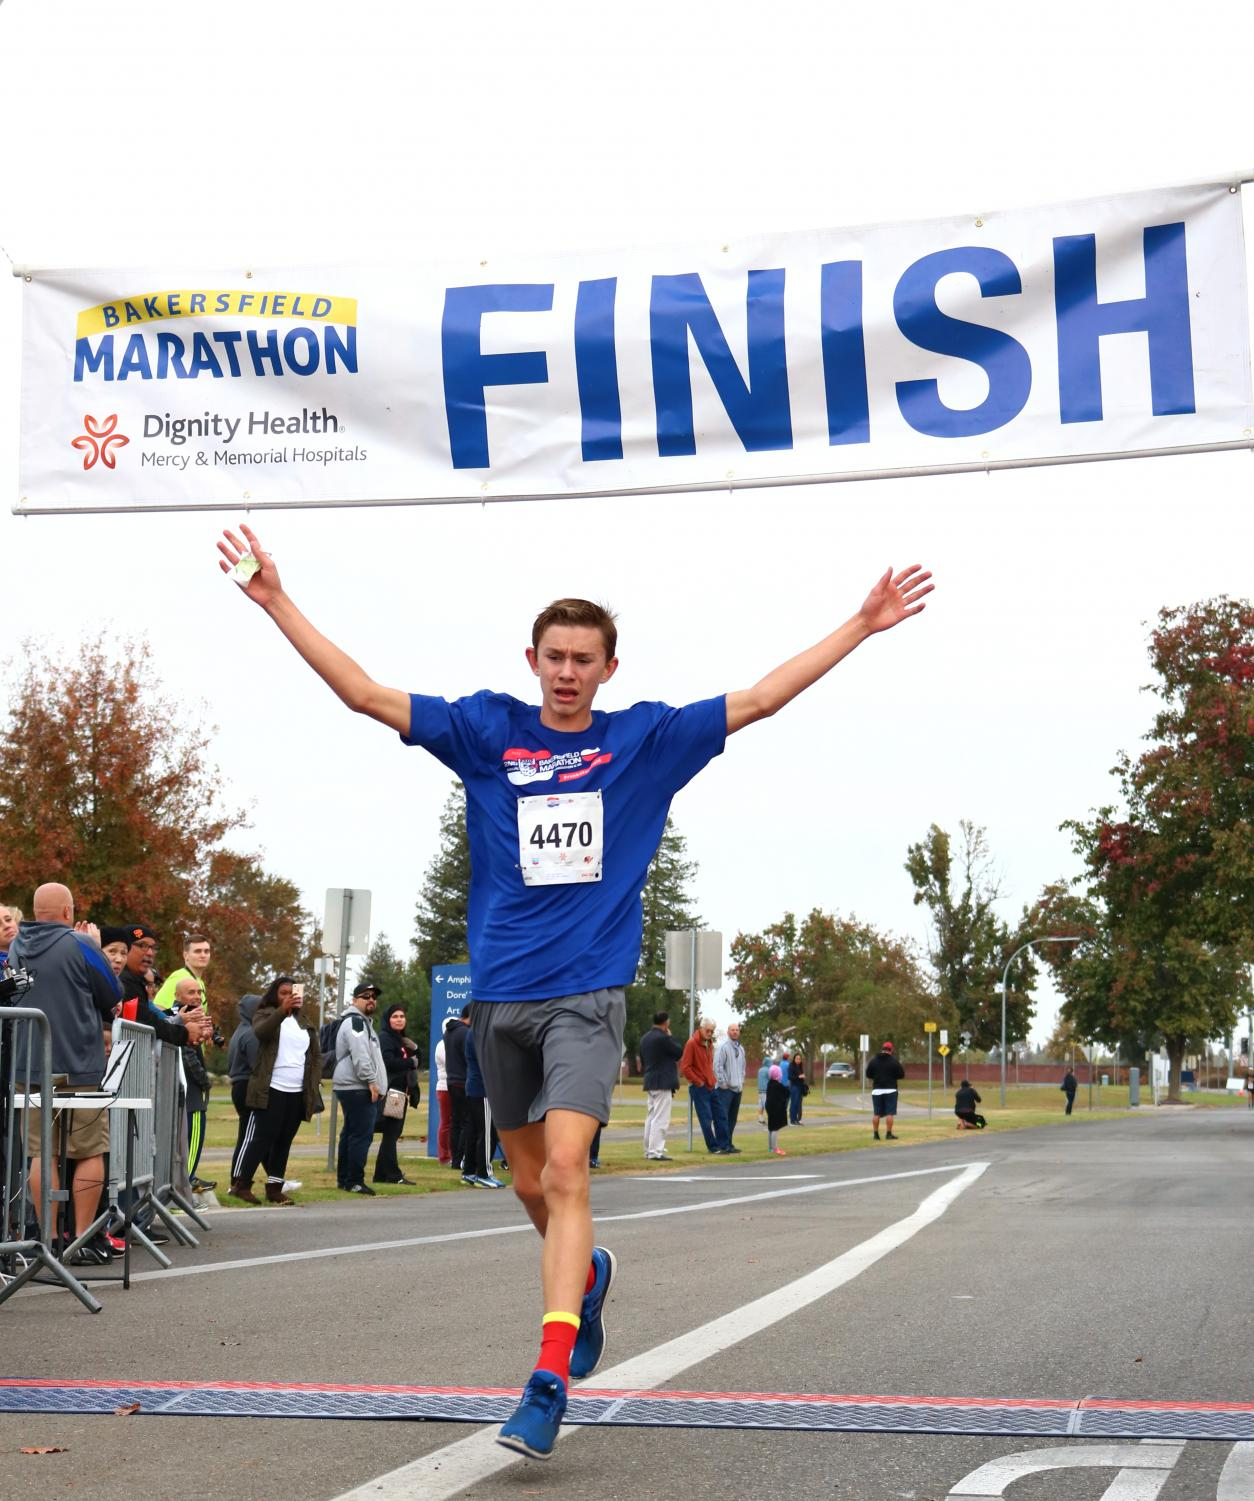 Bakersfield resident Austin Crist crosses the finish line and places third in the 5k race.